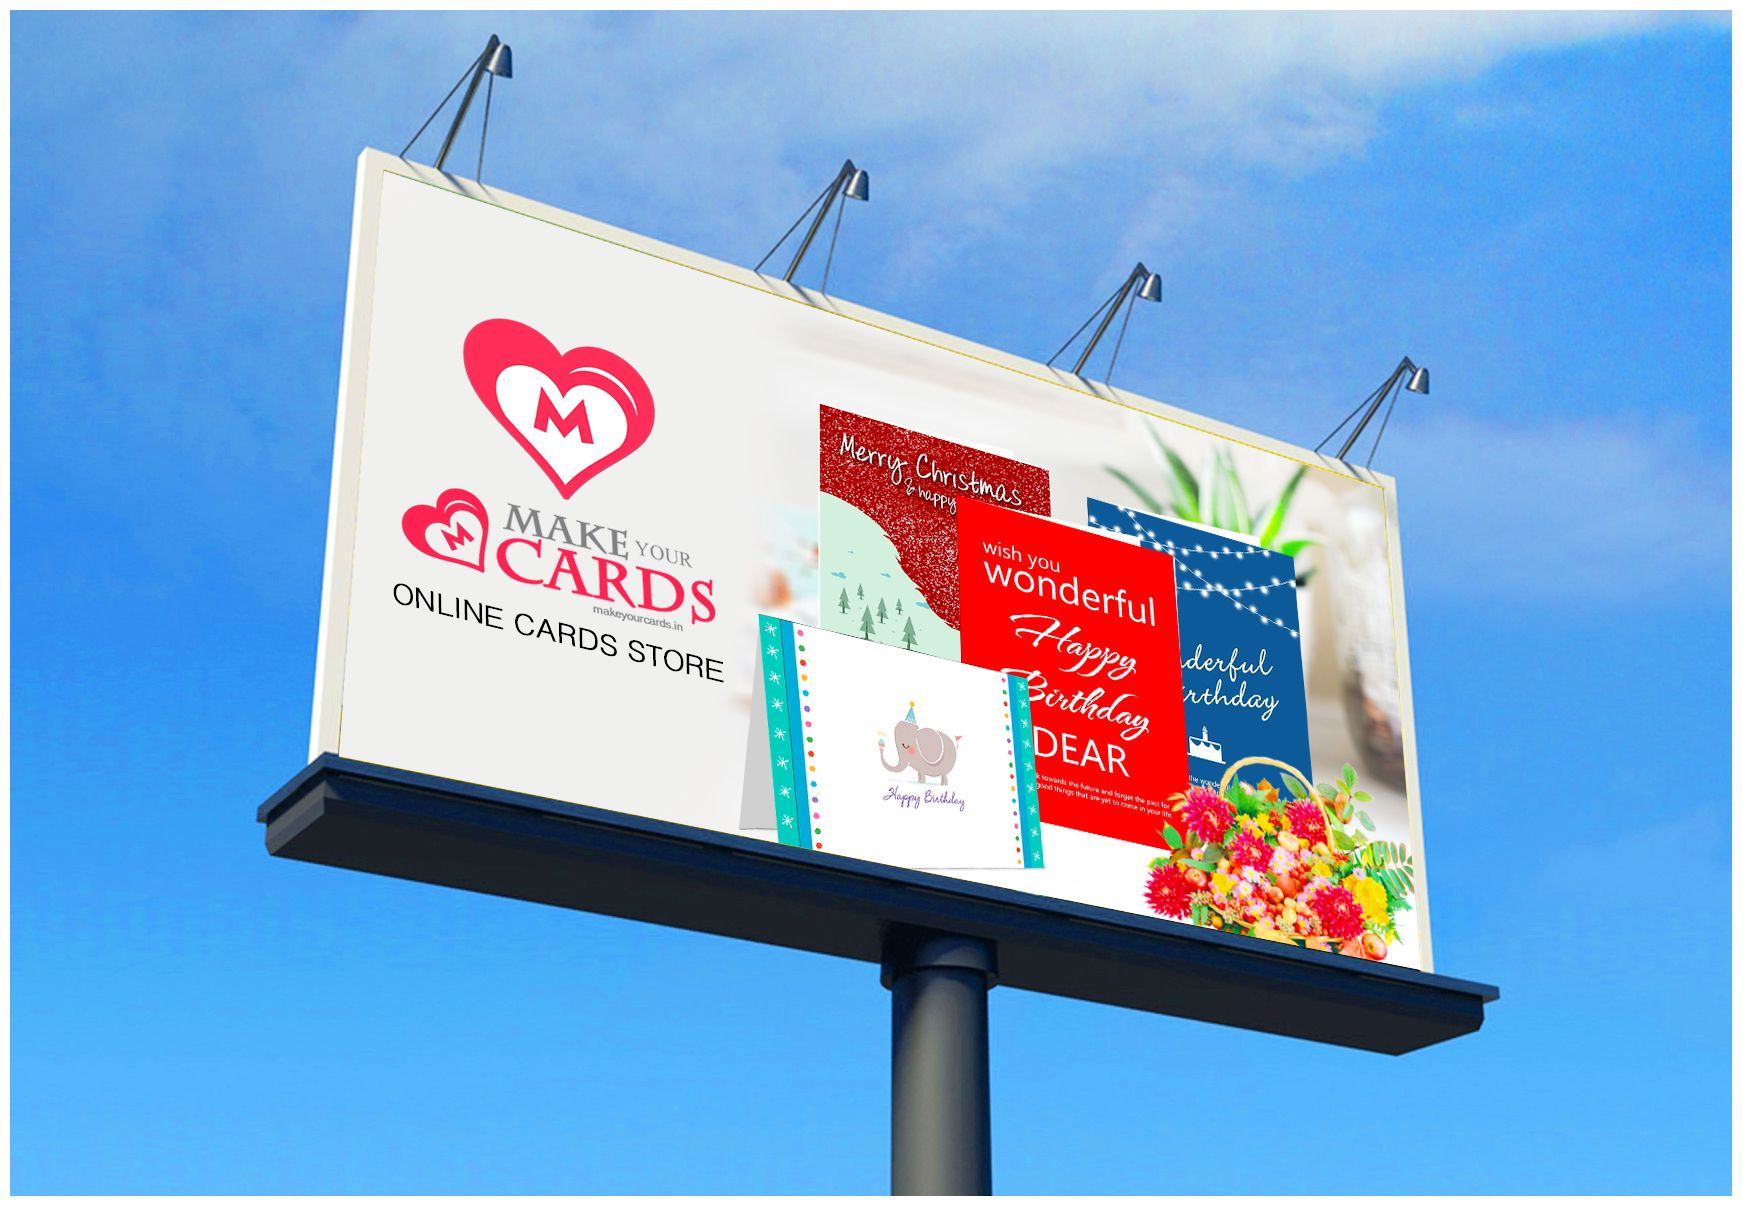 Greetings cards exclusively for your loved ones http greetings cards exclusively for your loved ones httpmakeyourcards m4hsunfo